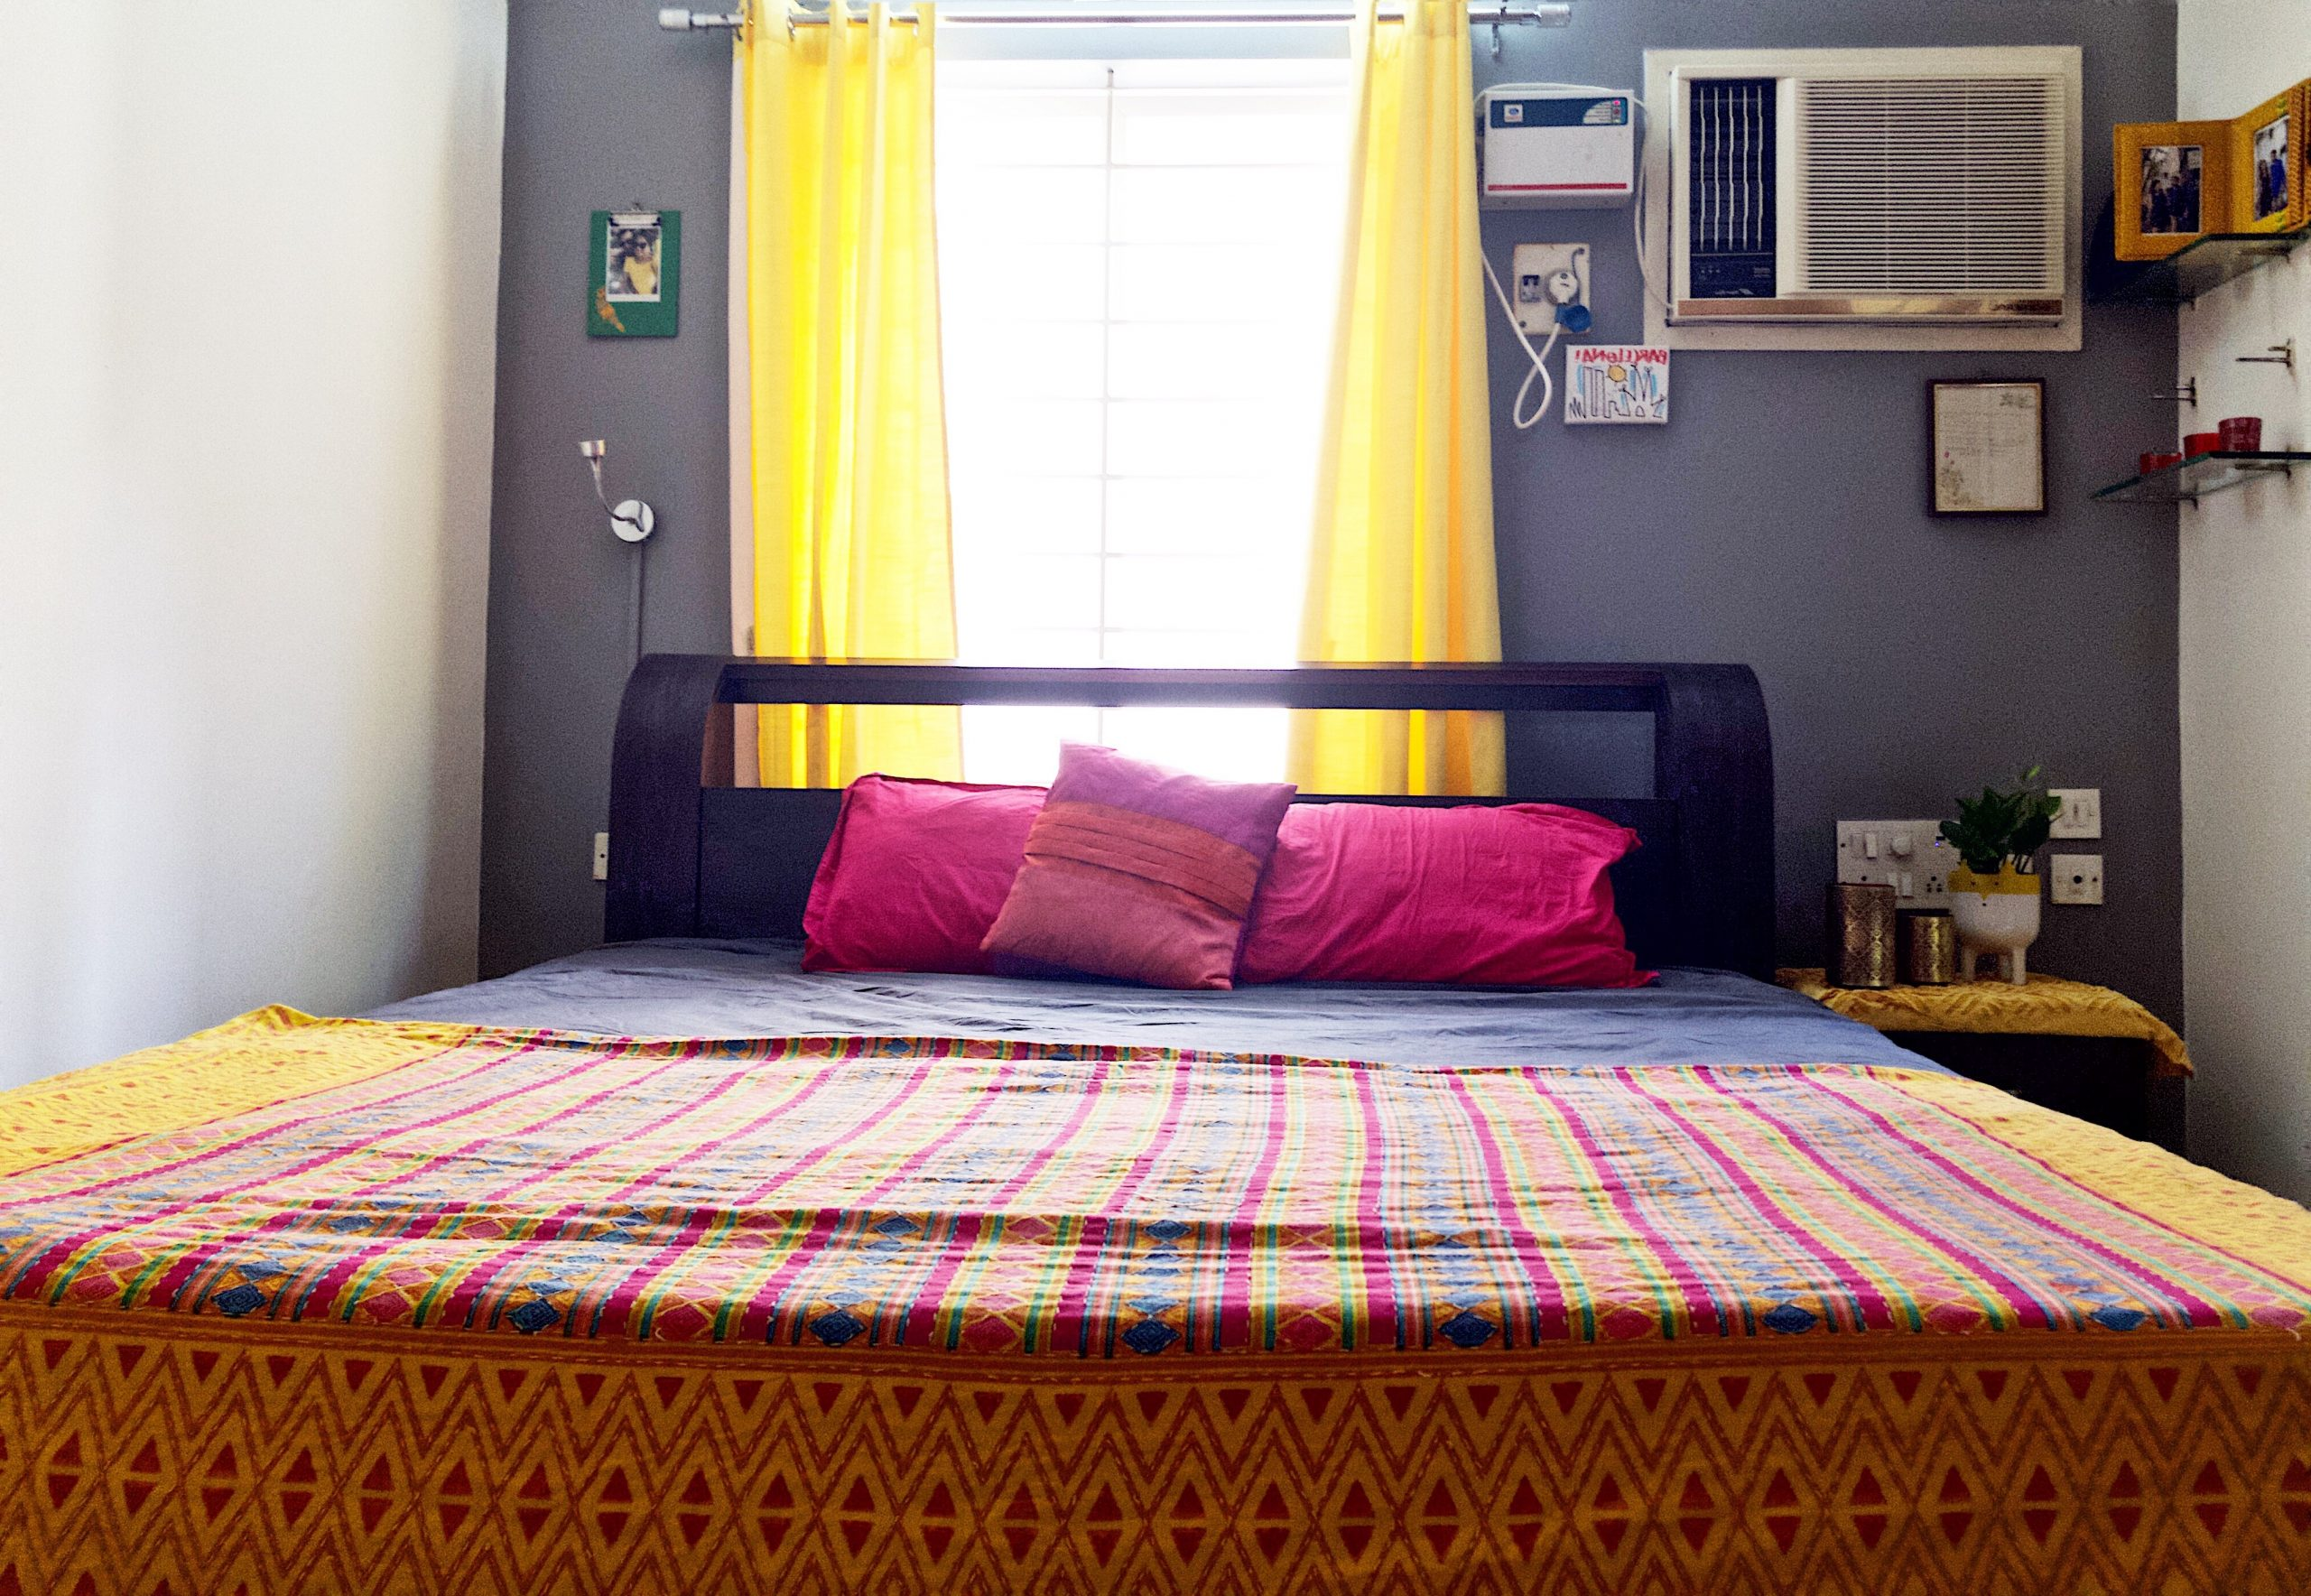 I Gave My Bedroom A Makeover! Pennmoney 20+ Nippon Paint Designs Living Room Ideas